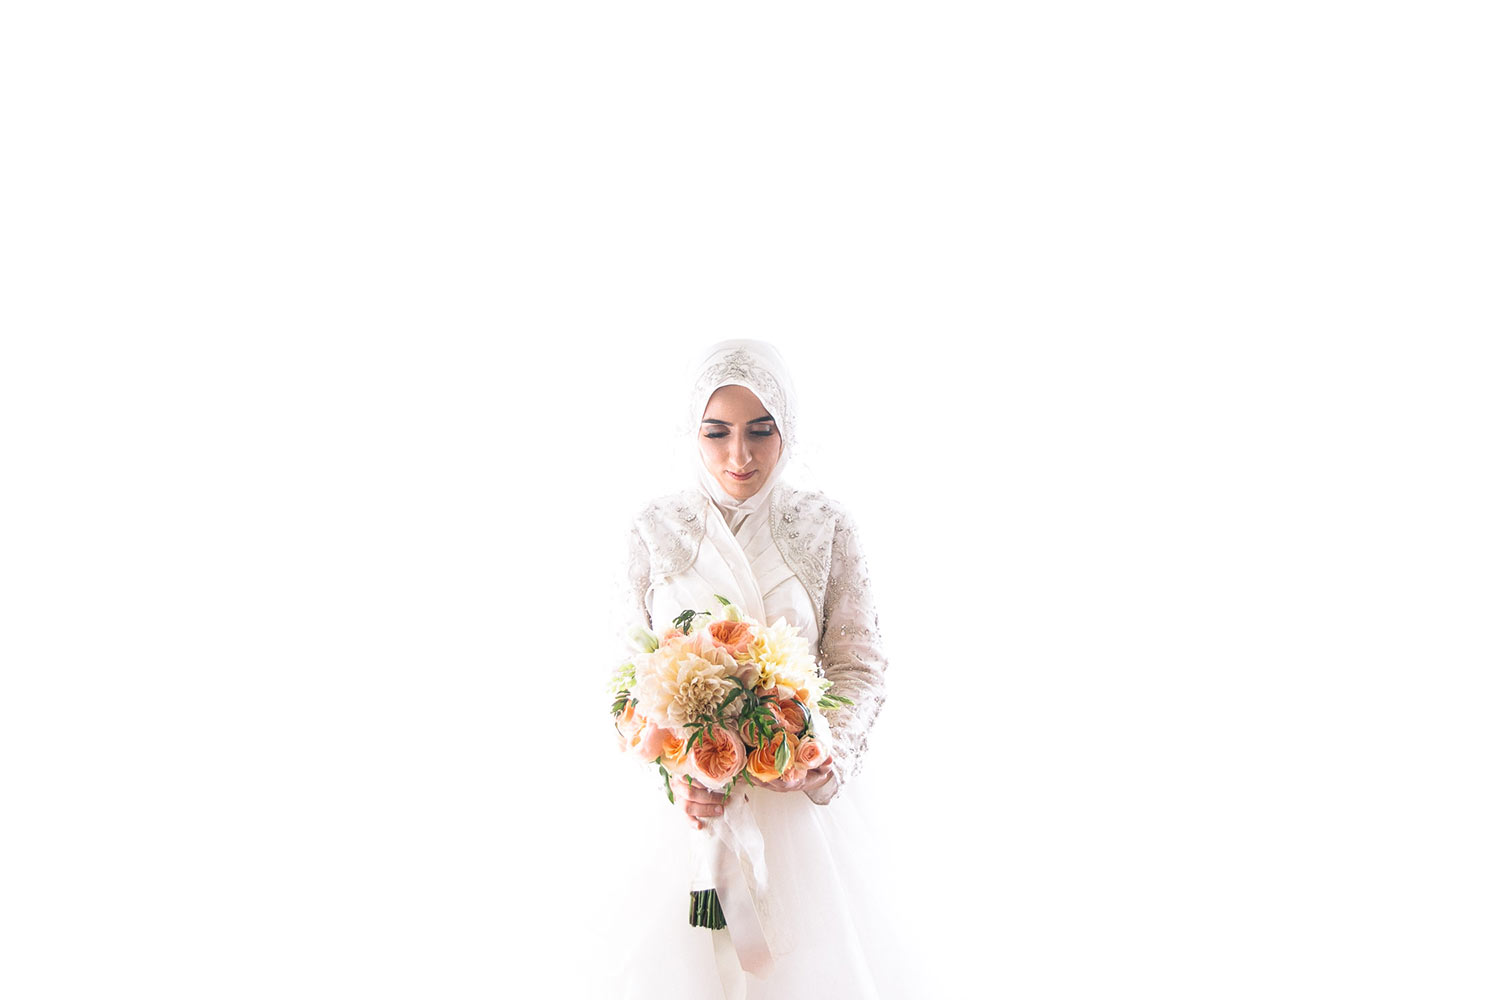 High key portrait of Muslim bride in head scarf with orange and coral bouquet, by Calloway Gable